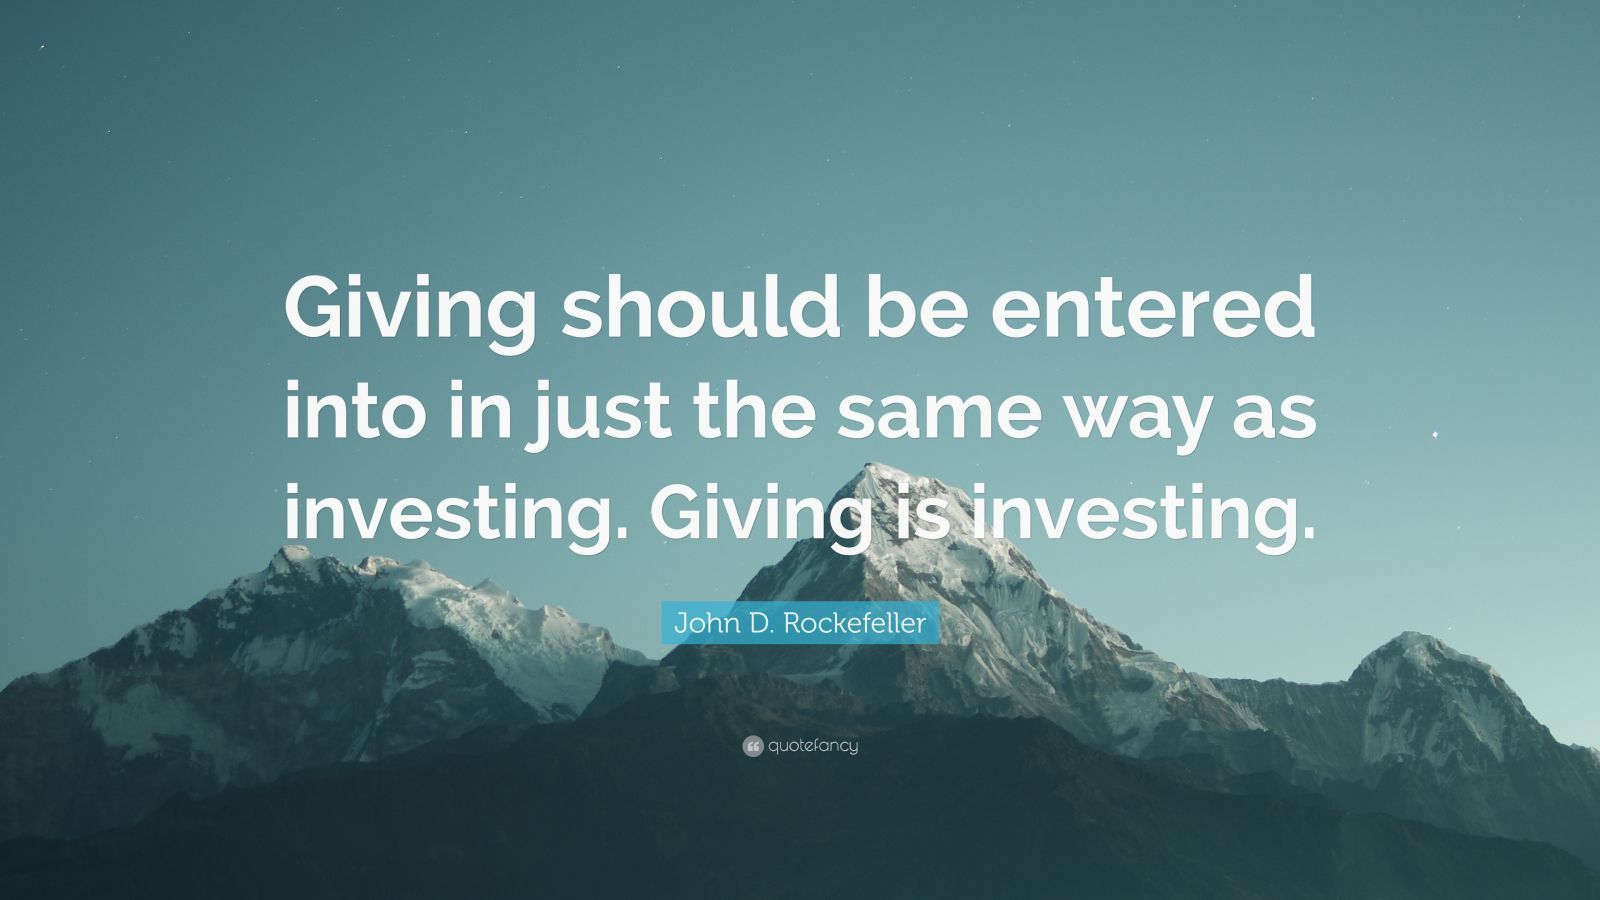 """John D. Rockefeller Quote: """"Giving should be entered into in just the same way as investing. Giving is investing."""""""